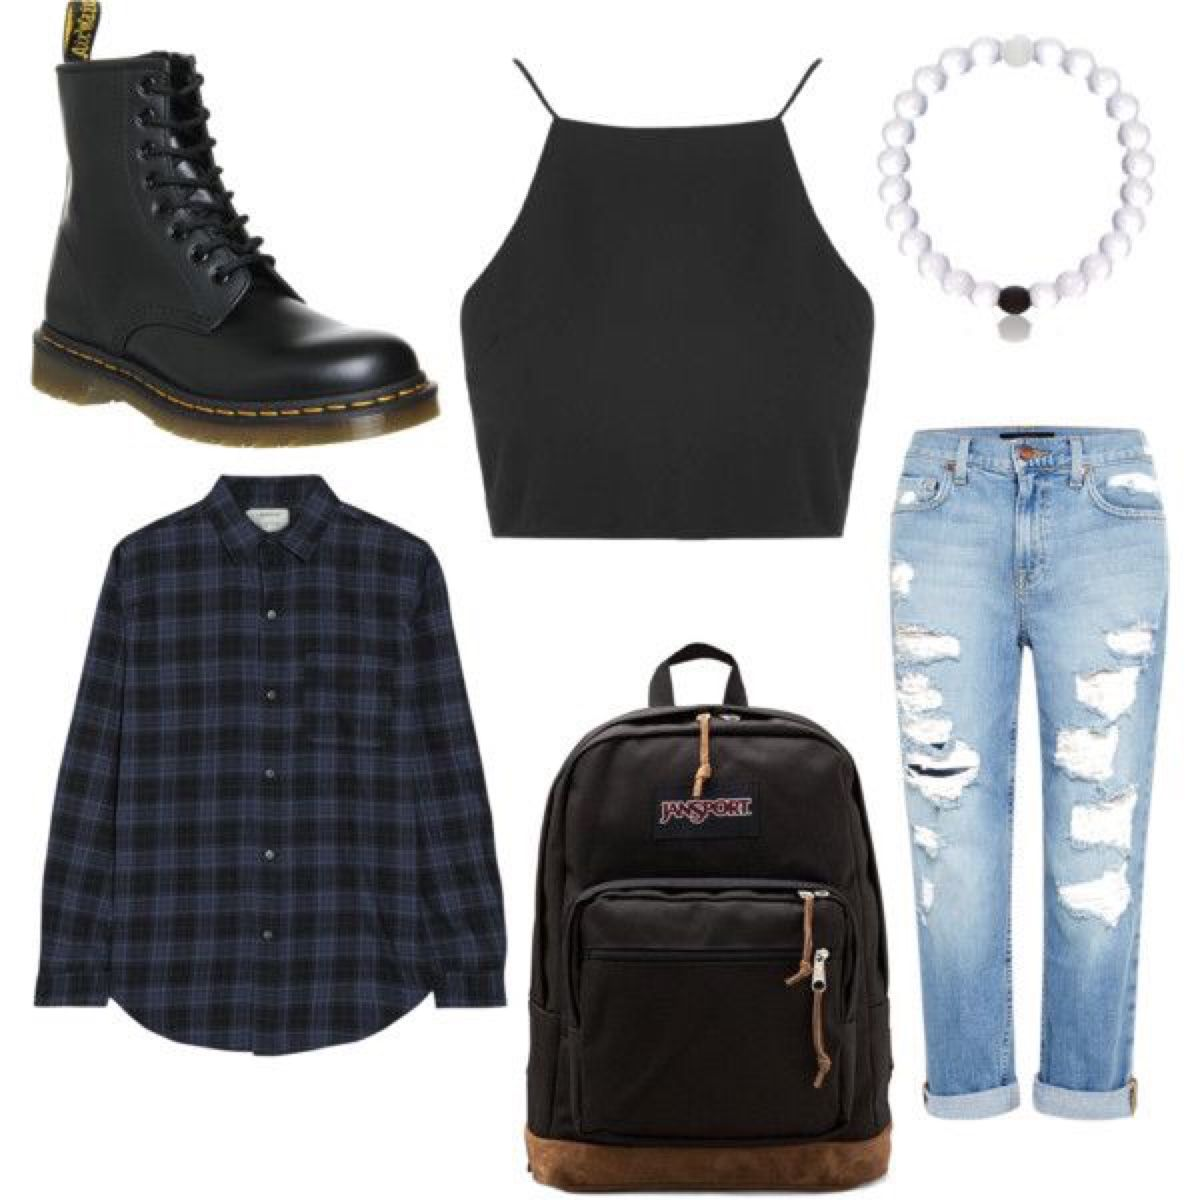 90s Grunge Aesthetic Clothes